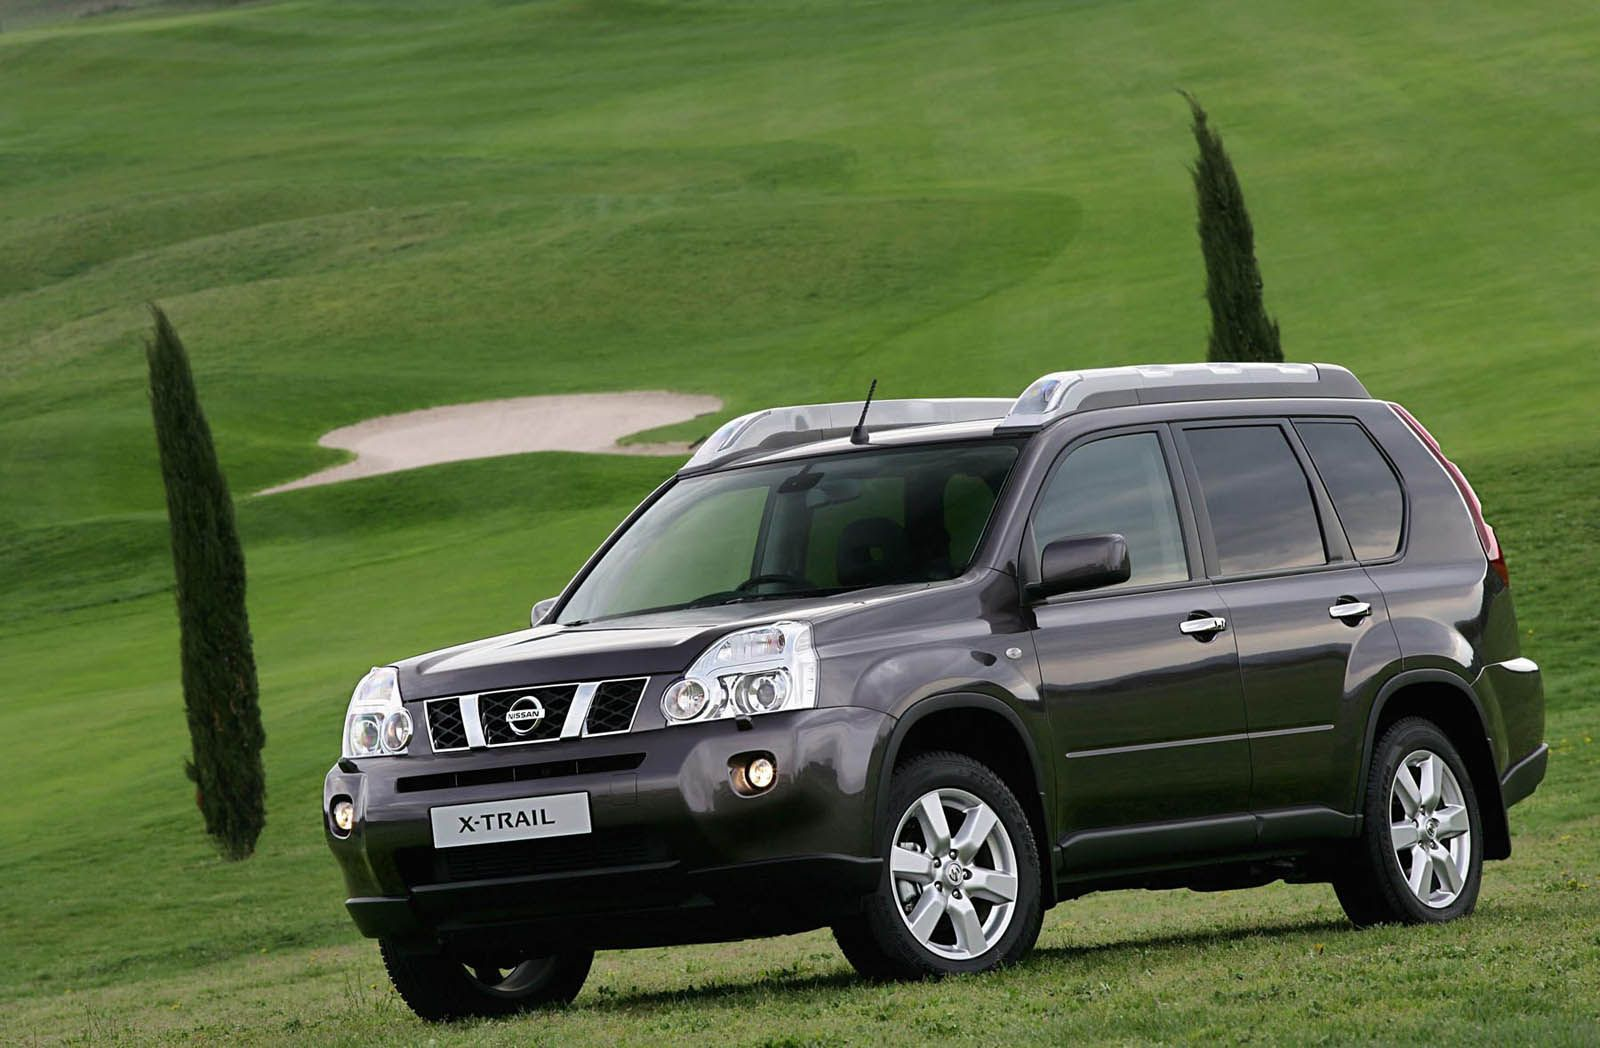 News from the 2014 Nissan X Trail family car front. At the